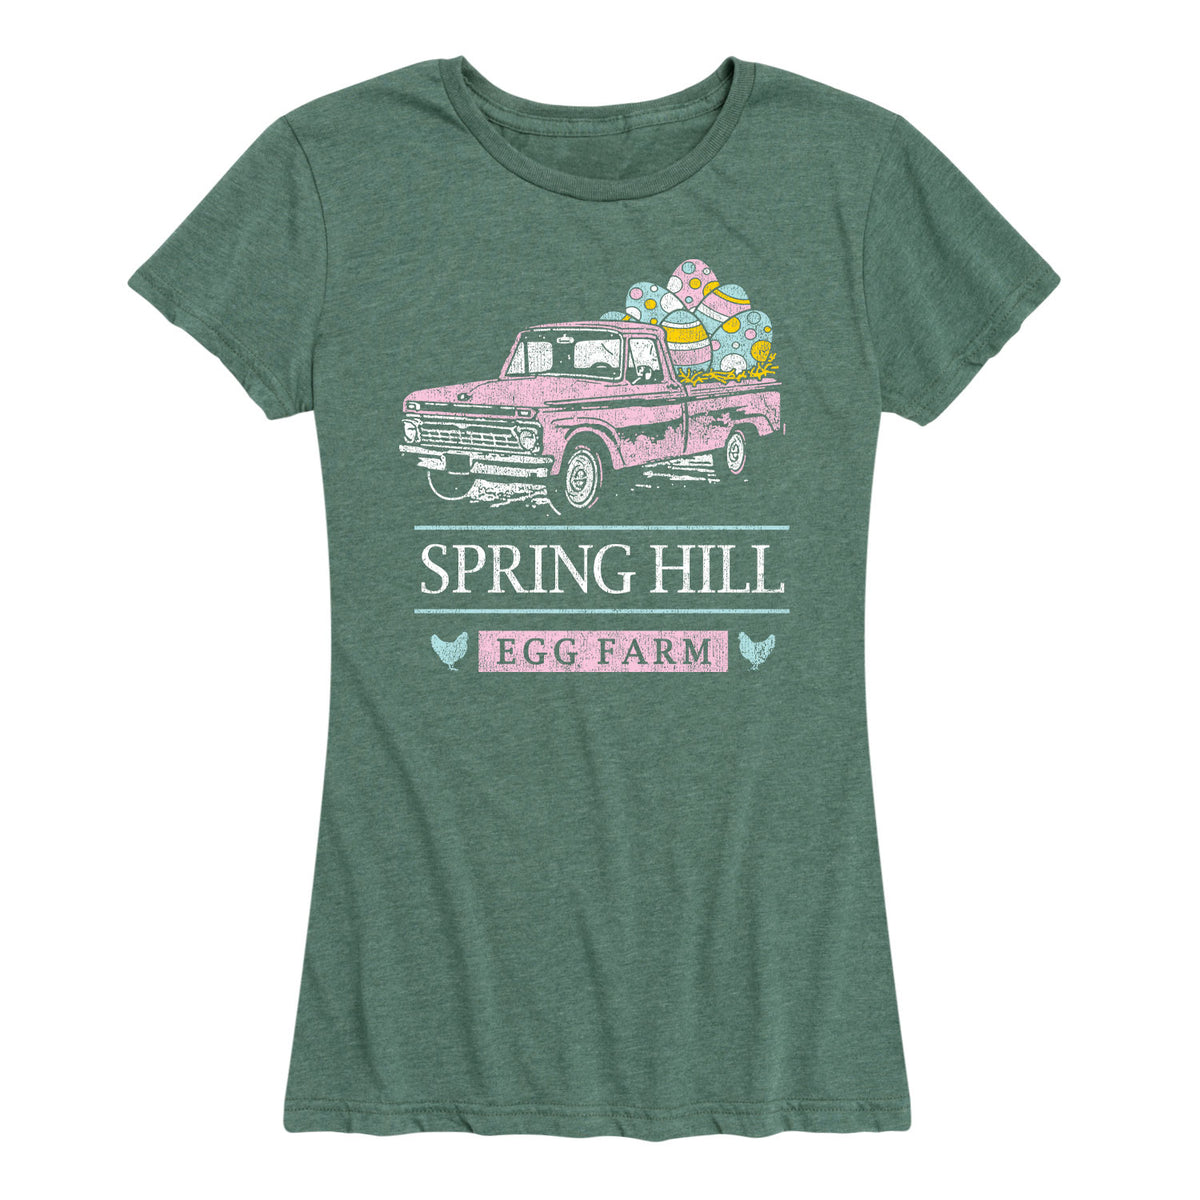 Spring Hill Egg Farm Truck - Women's Short Sleeve T-Shirt